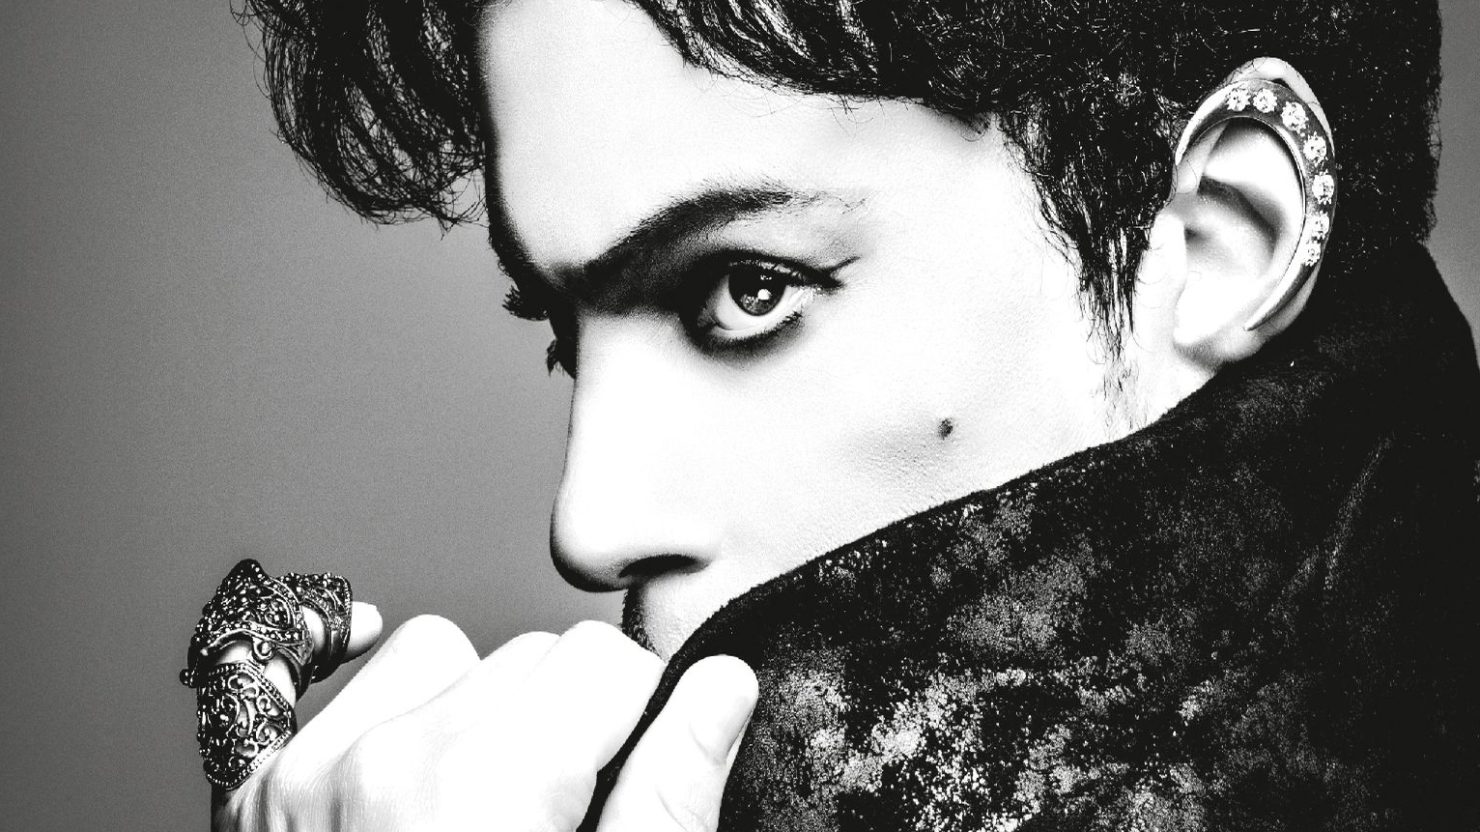 Prince Greatest Hits Album Features Unreleased Track